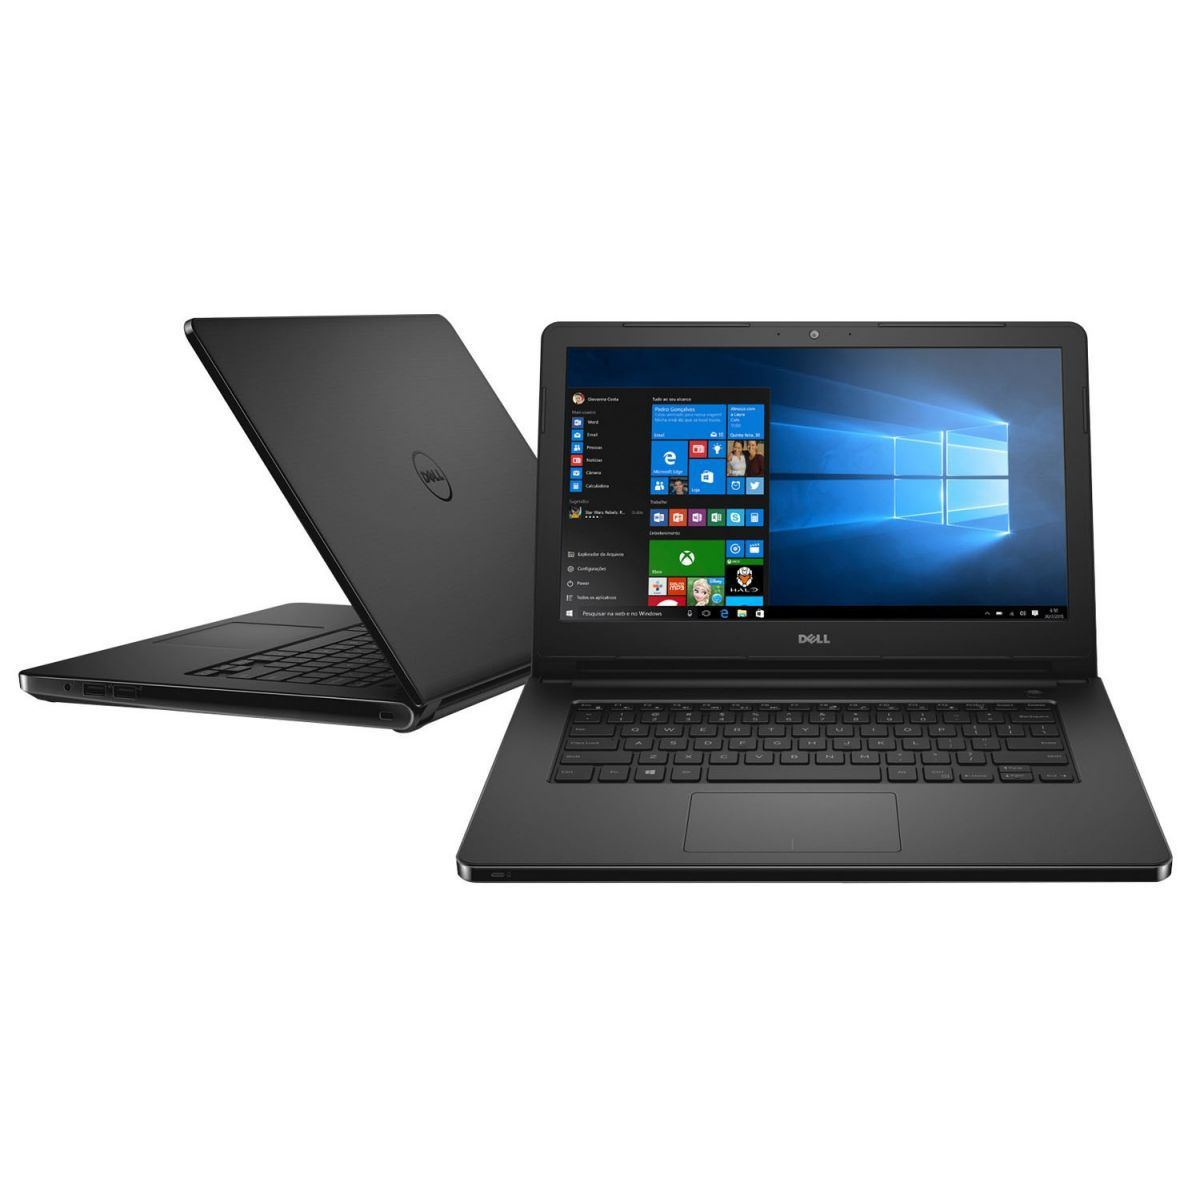 "Notebook Dell Inspiron 14 - Intel Core i5, 8GB de Memória, HD de 1TB, Windows 10, Tela LED de 14"" -  14-5458-B37 *"